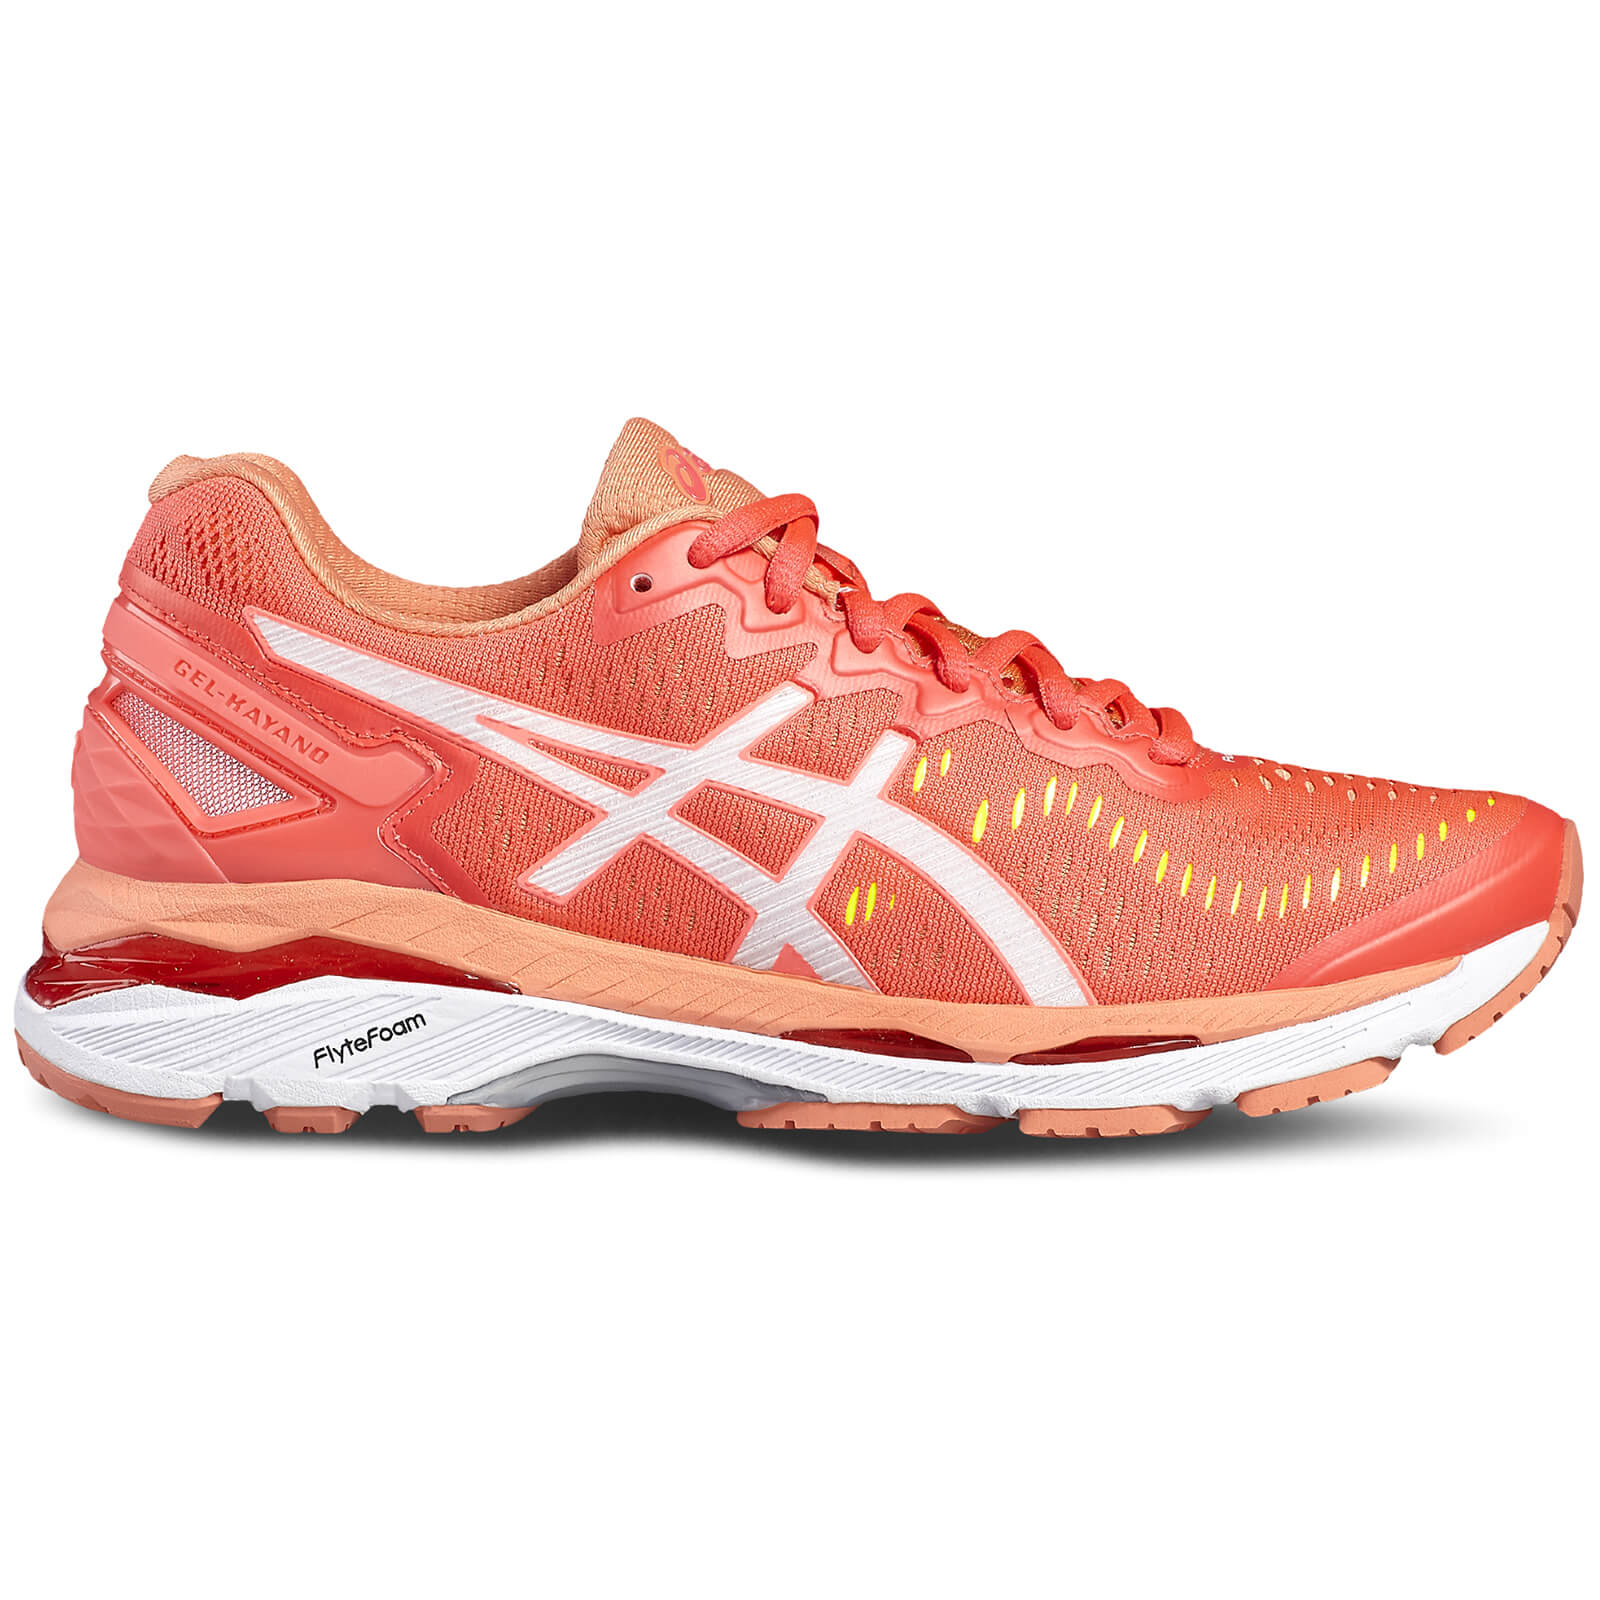 Chaussures de course Asics Gel Pink Kayano Gel 23 pour Chaussures femme Diva Pink   845f089 - radicalfrugality.info